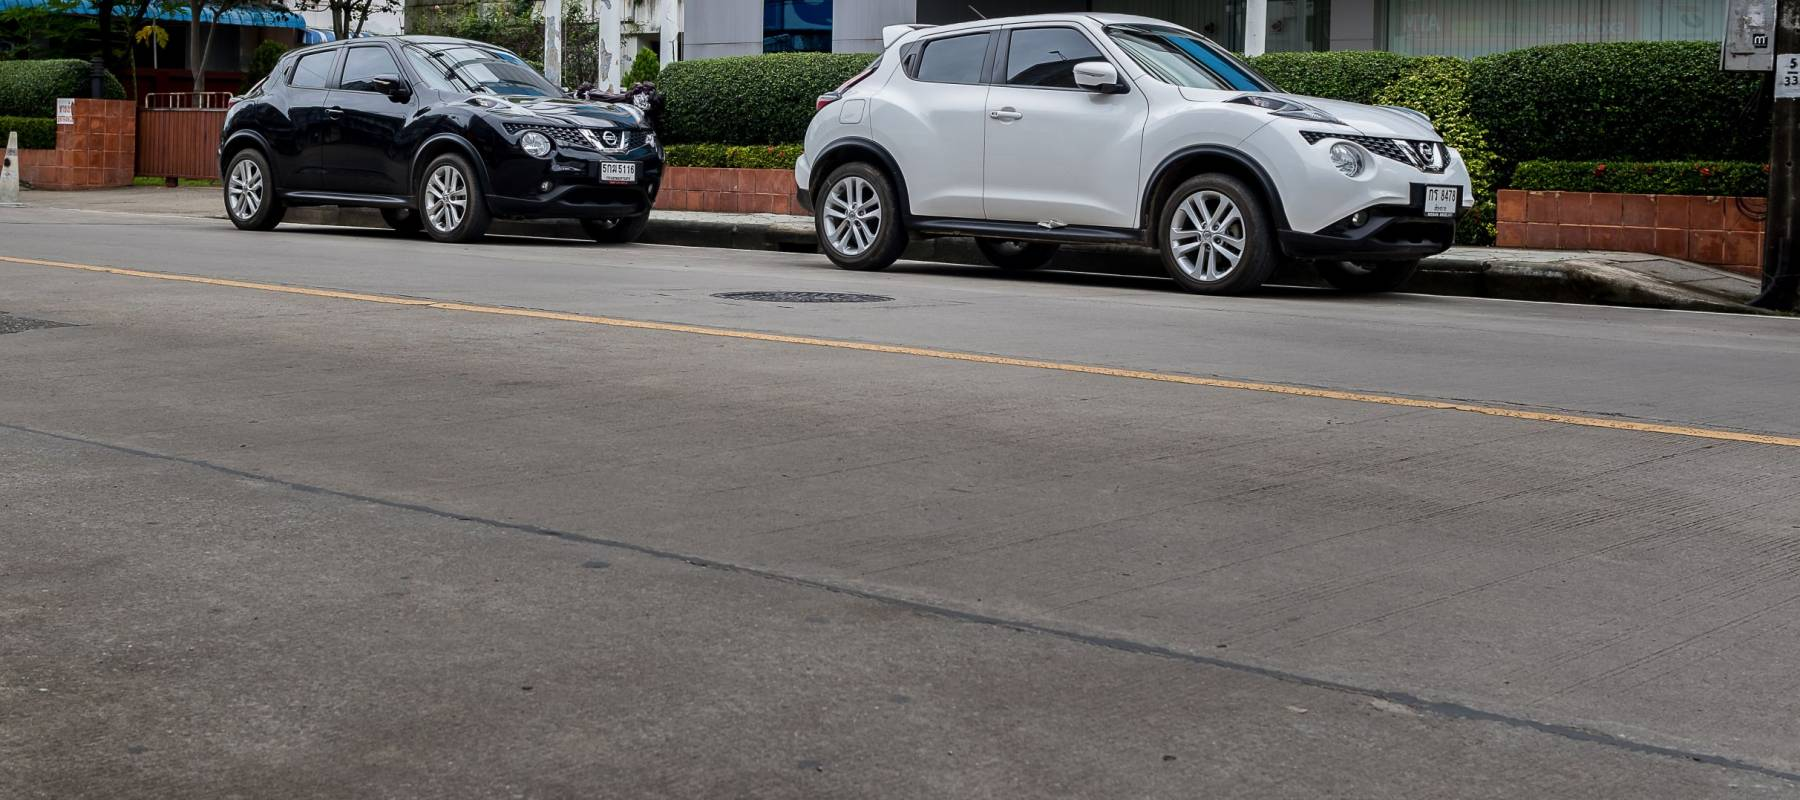 ChiangRai THAILAND-September:9:2017:The Nissan Juke black & white is a Mini Sport Utility Vehicle